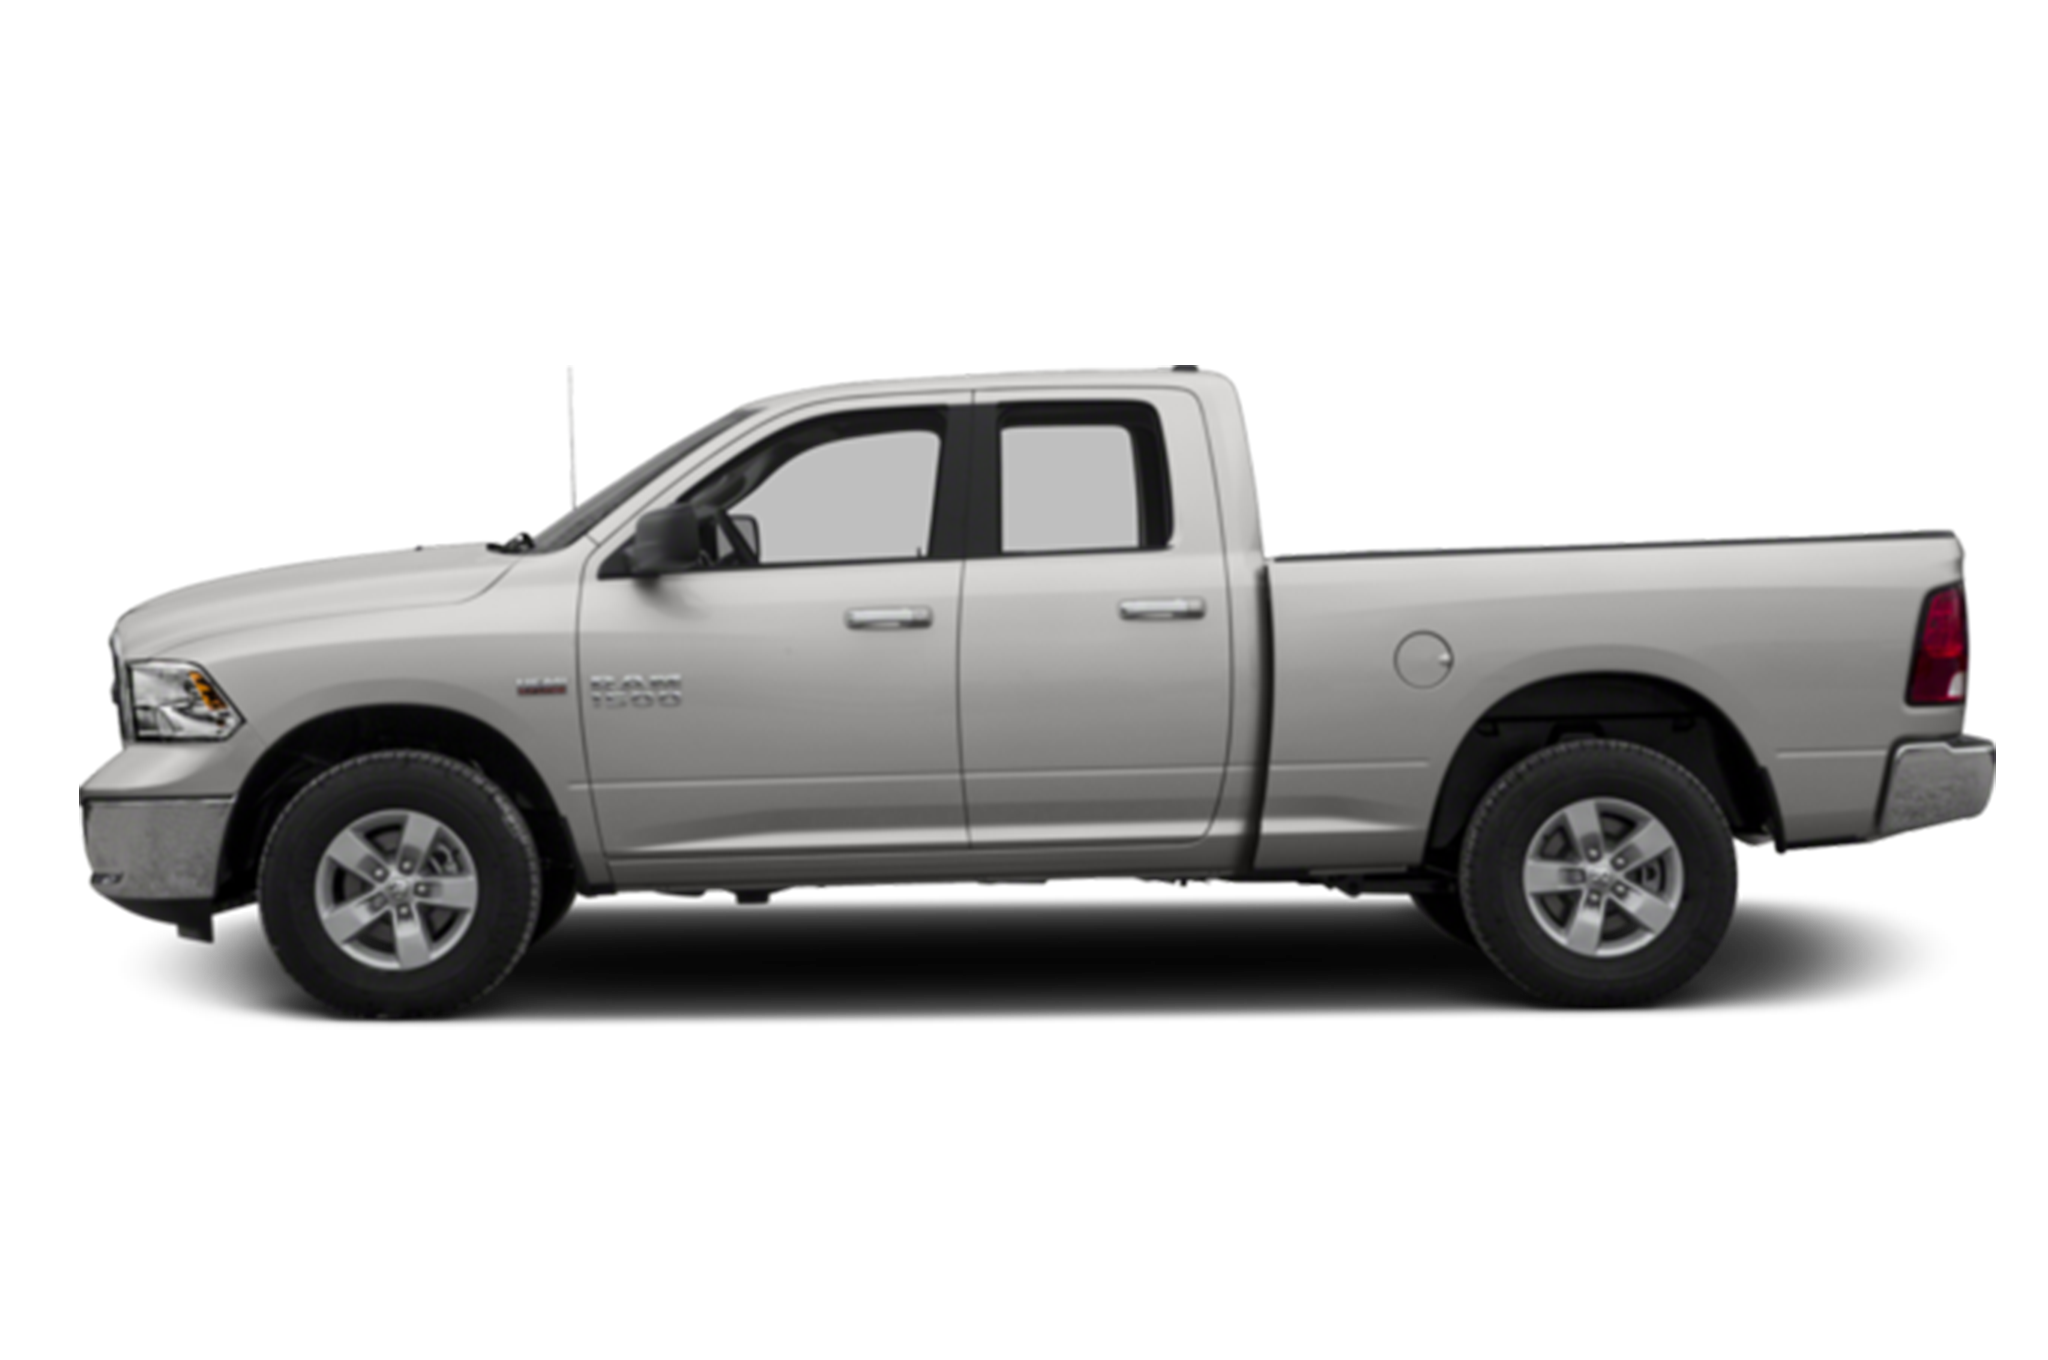 New Ram 1500 Delray Beach FL